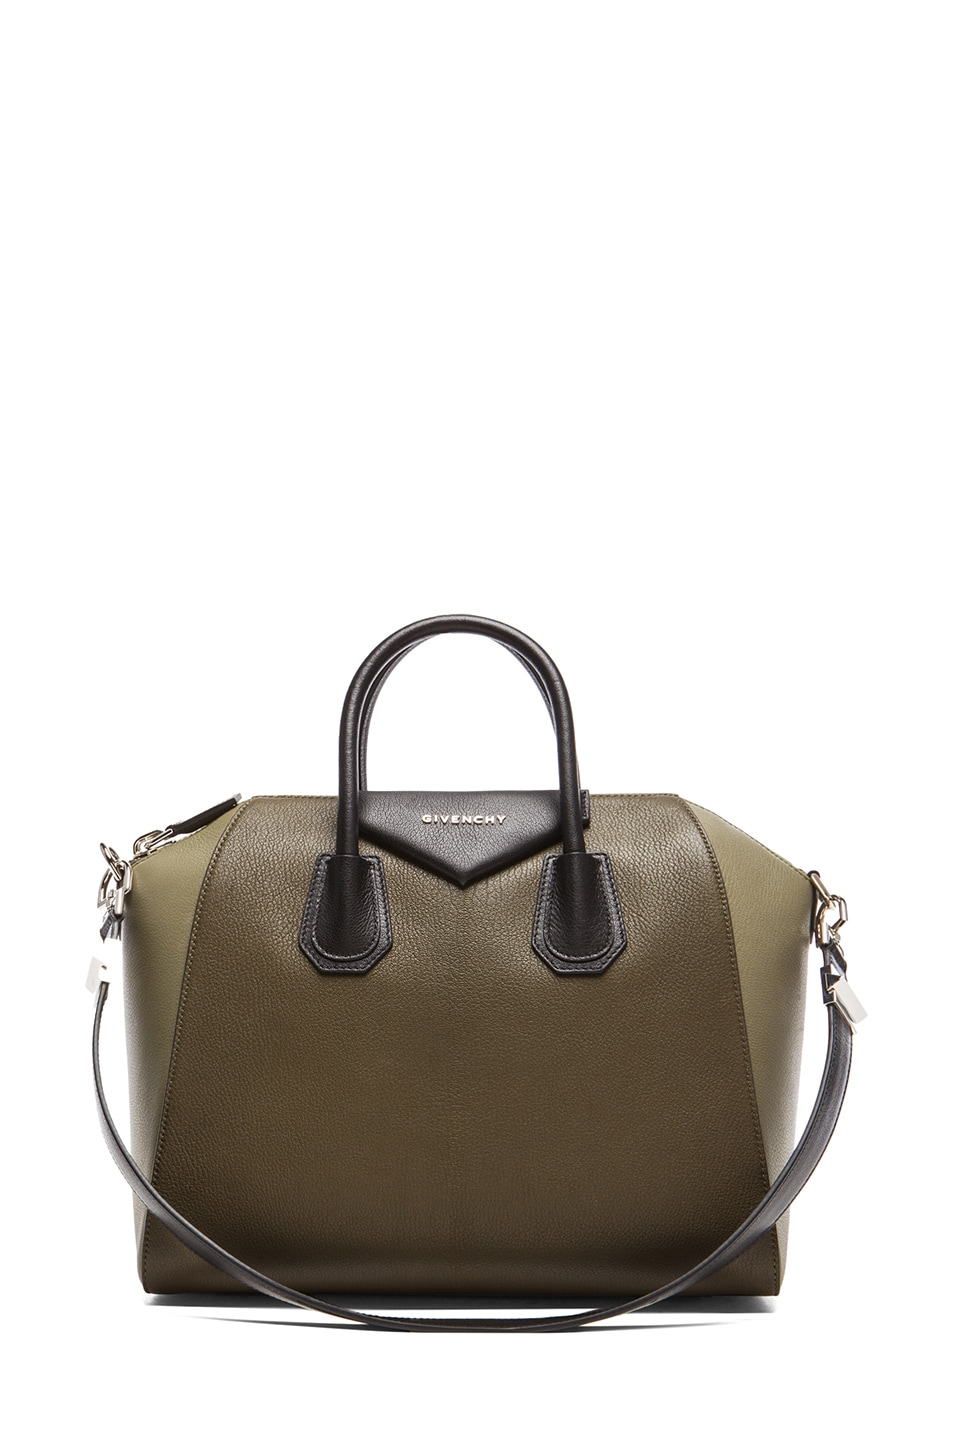 Image 1 of Givenchy Medium Antigona in Khaki Multi